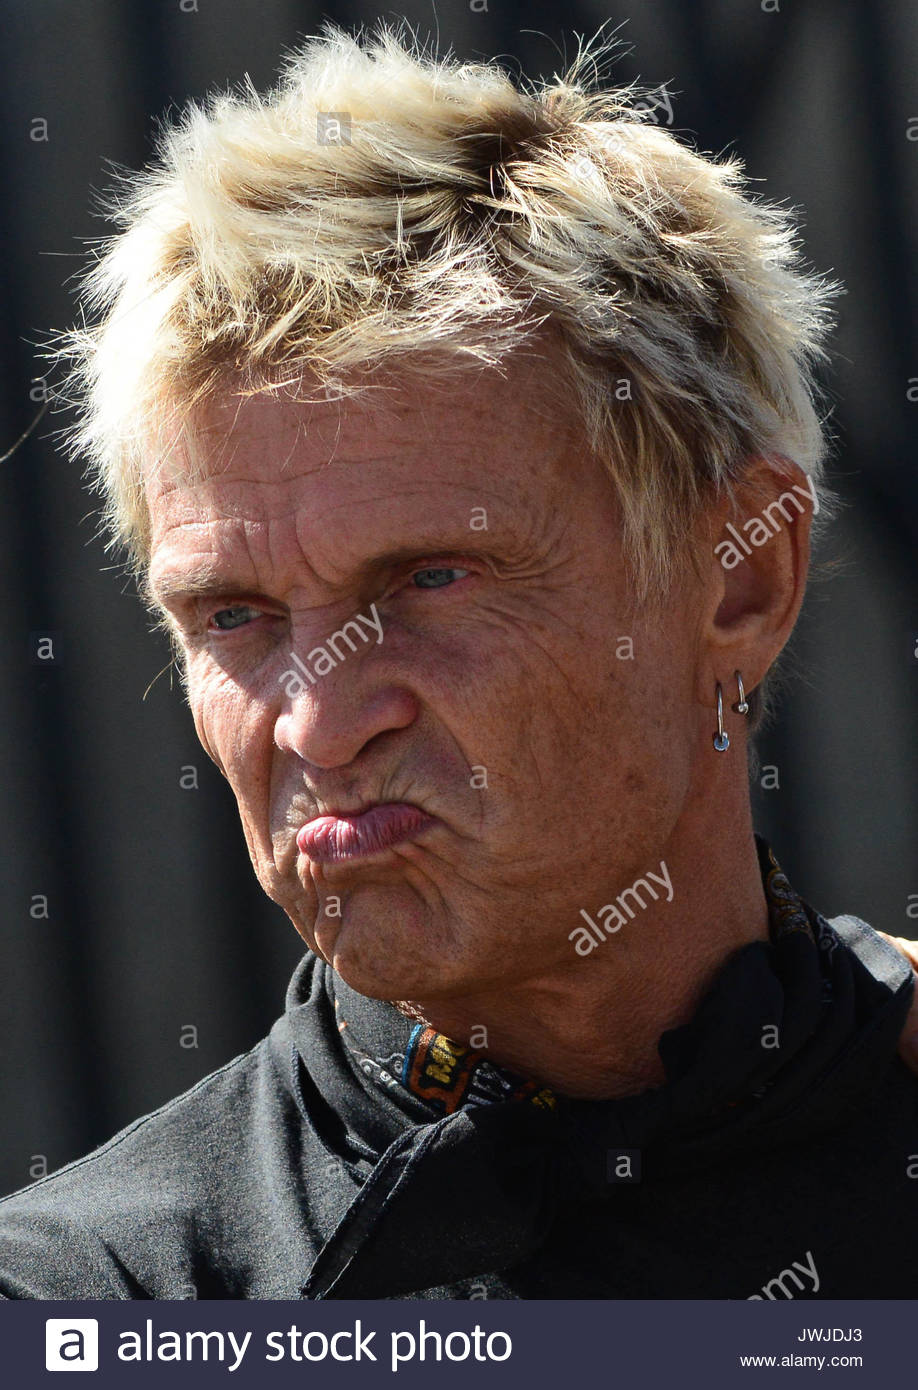 Billy Idol  Rocker Billy Idol spit gels his spiked hair while Stock     Billy Idol  Rocker Billy Idol spit gels his spiked hair while visiting  friends on the set of  CSI Crime Scene Investigation  at Arena Nightclub in  West